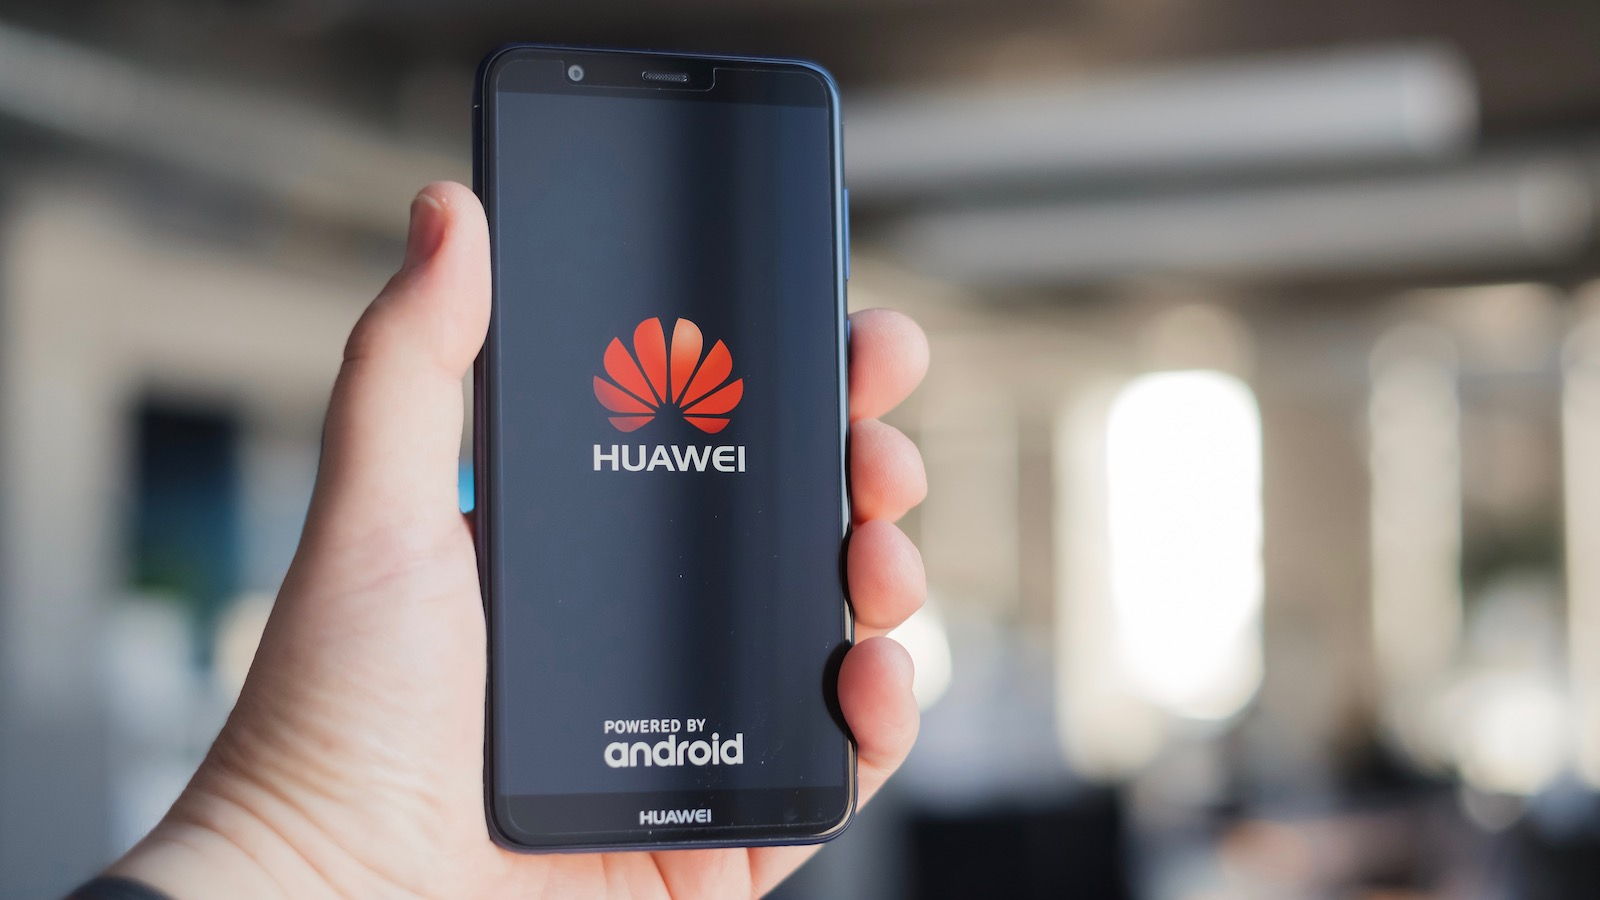 Google cuts Huawei's Android access to app and security